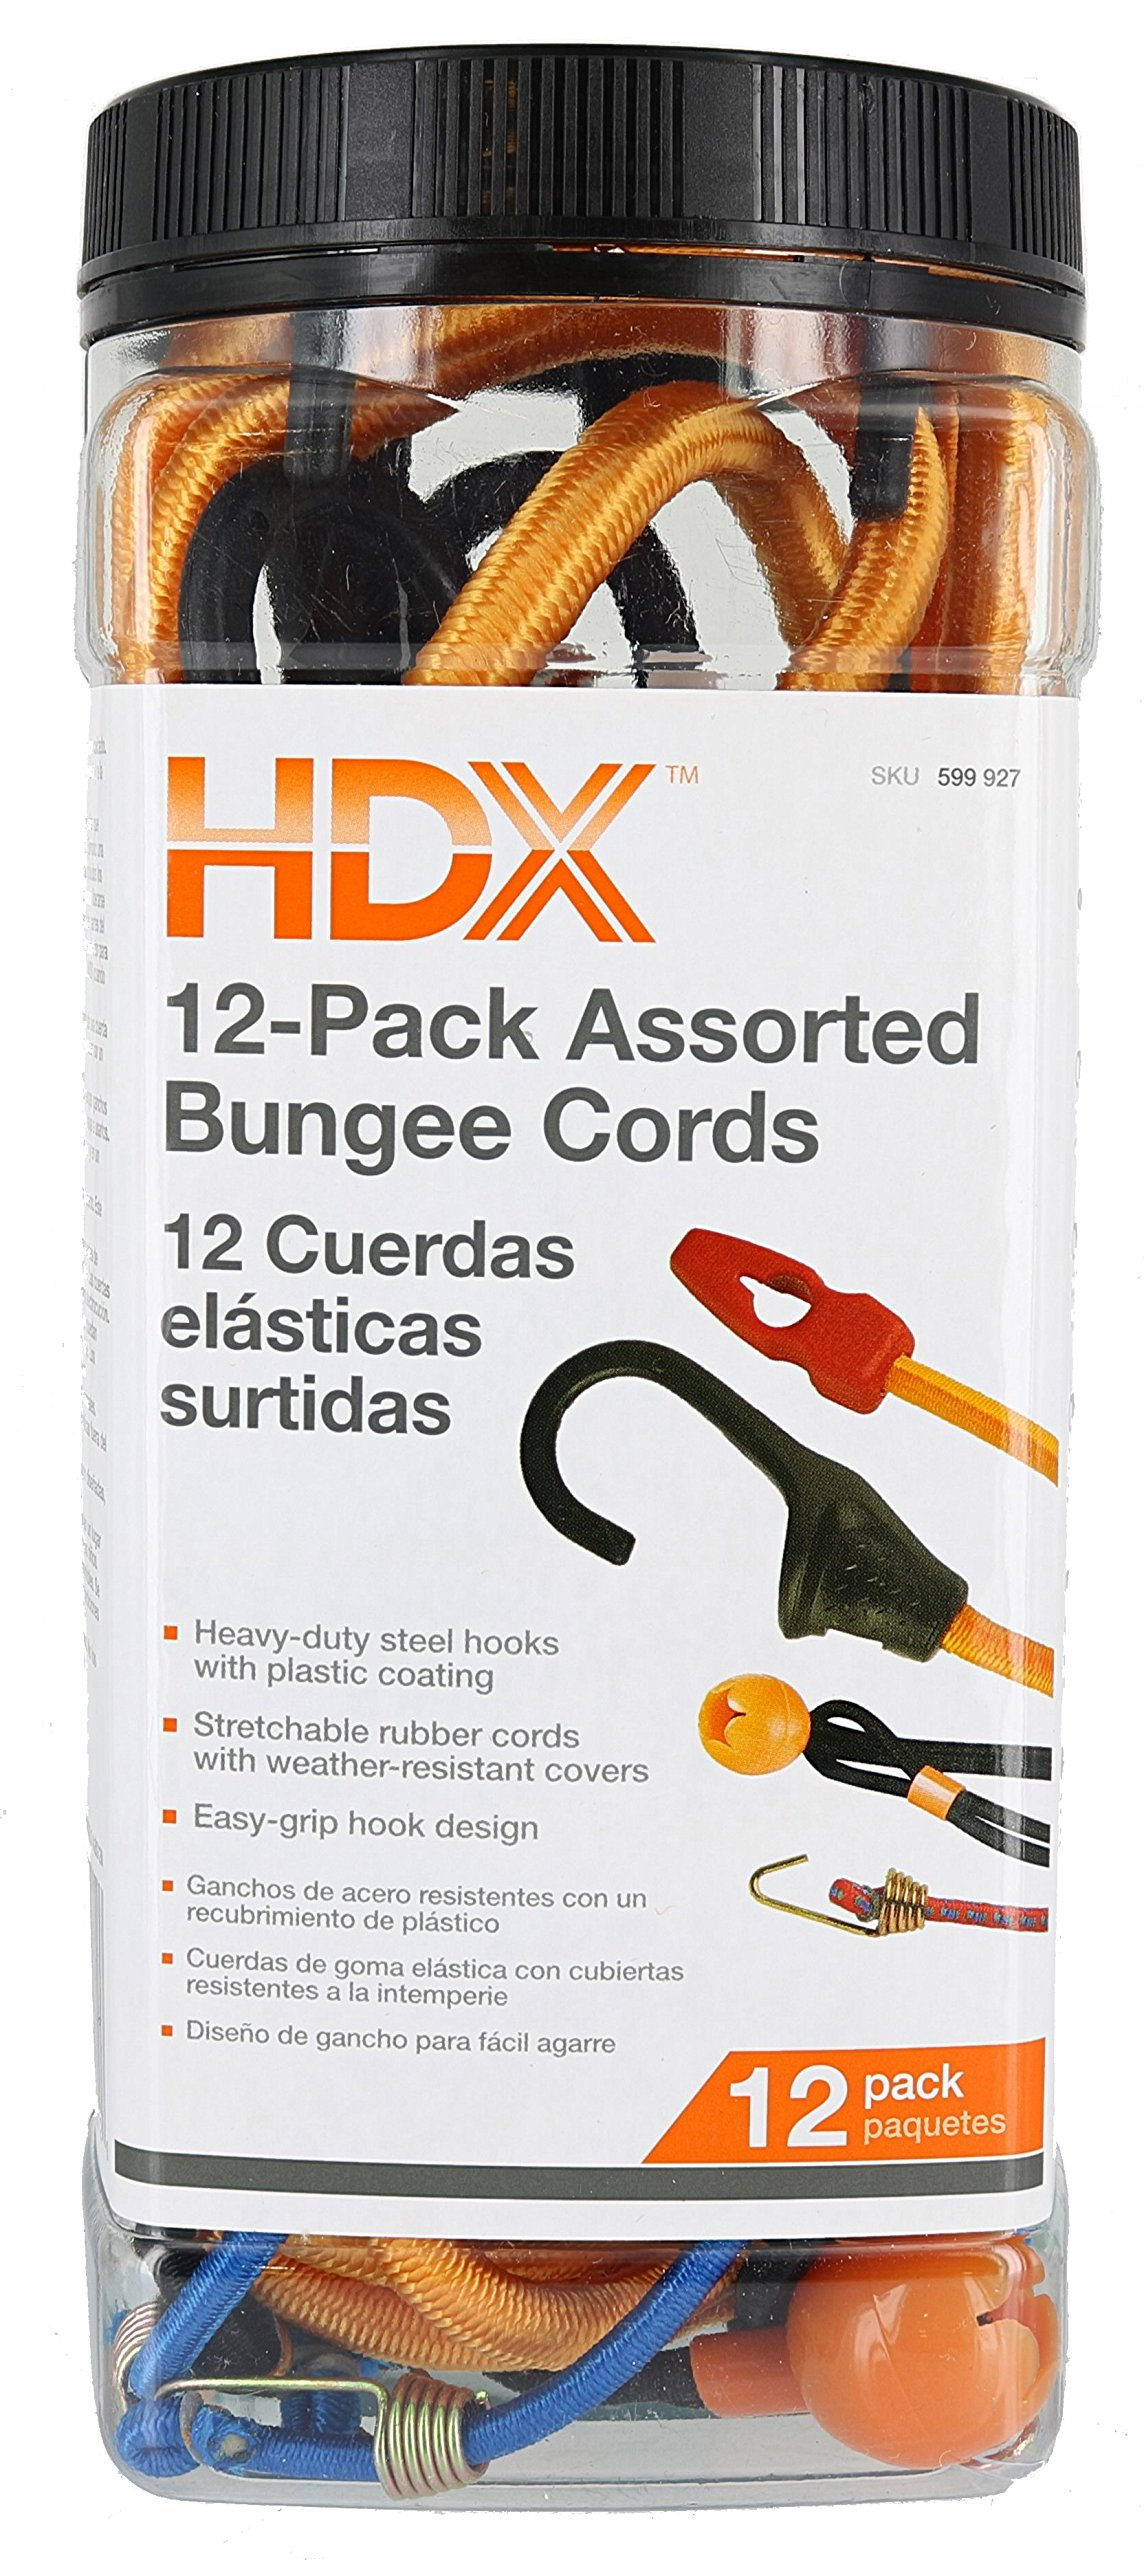 HDX JBS12 12-Pack of Assorted Latex Rubber-Cored Bungee Cords and Canopy Tarp Ties w/ Reusable Storage Jar